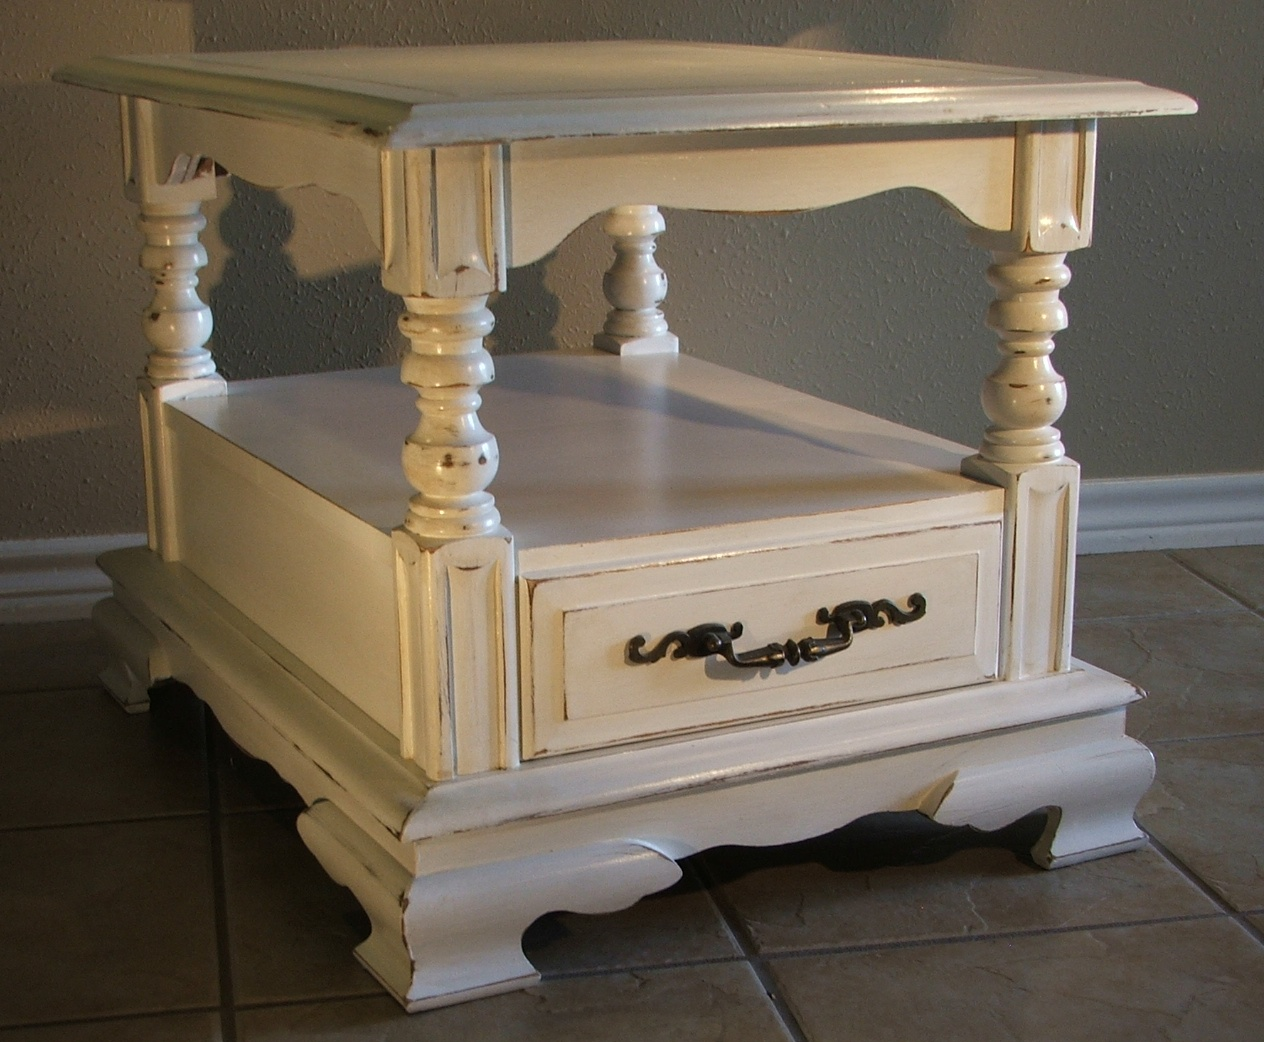 Tea-stained glaze creates a antiqued white look with lots of character–and  some real charm! 28″ long, 21″ wide, and 20″ tall. Includes original  hardware–a ... - Chunky Antiqued White End Table - Facelift Furniture